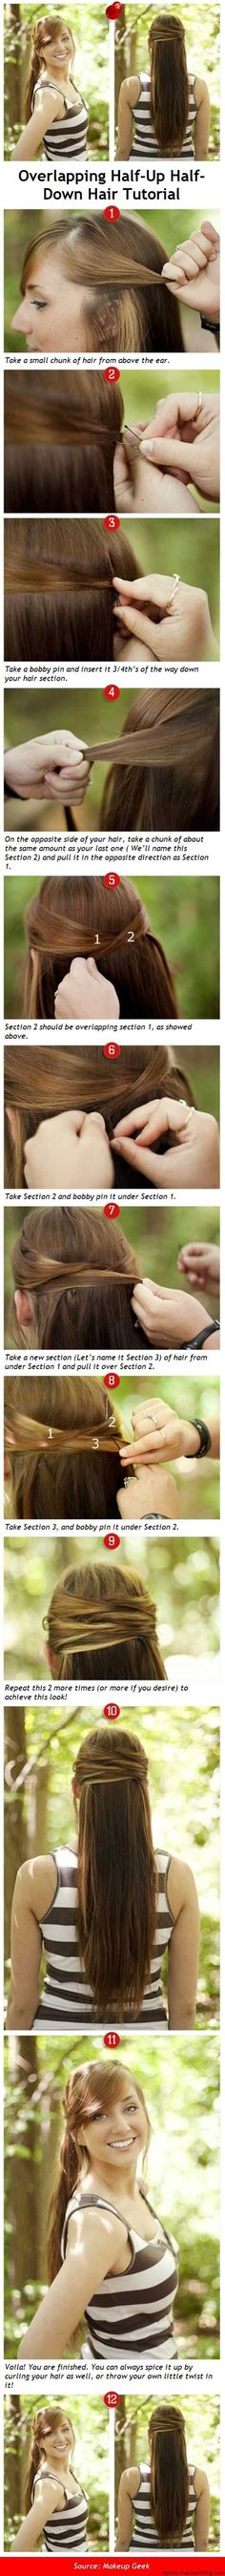 Overlapping Half-Up Half-Down Hair Tutorial. I did this for homecoming and it was VERY pretty. It's not hard to do. Pretty simple